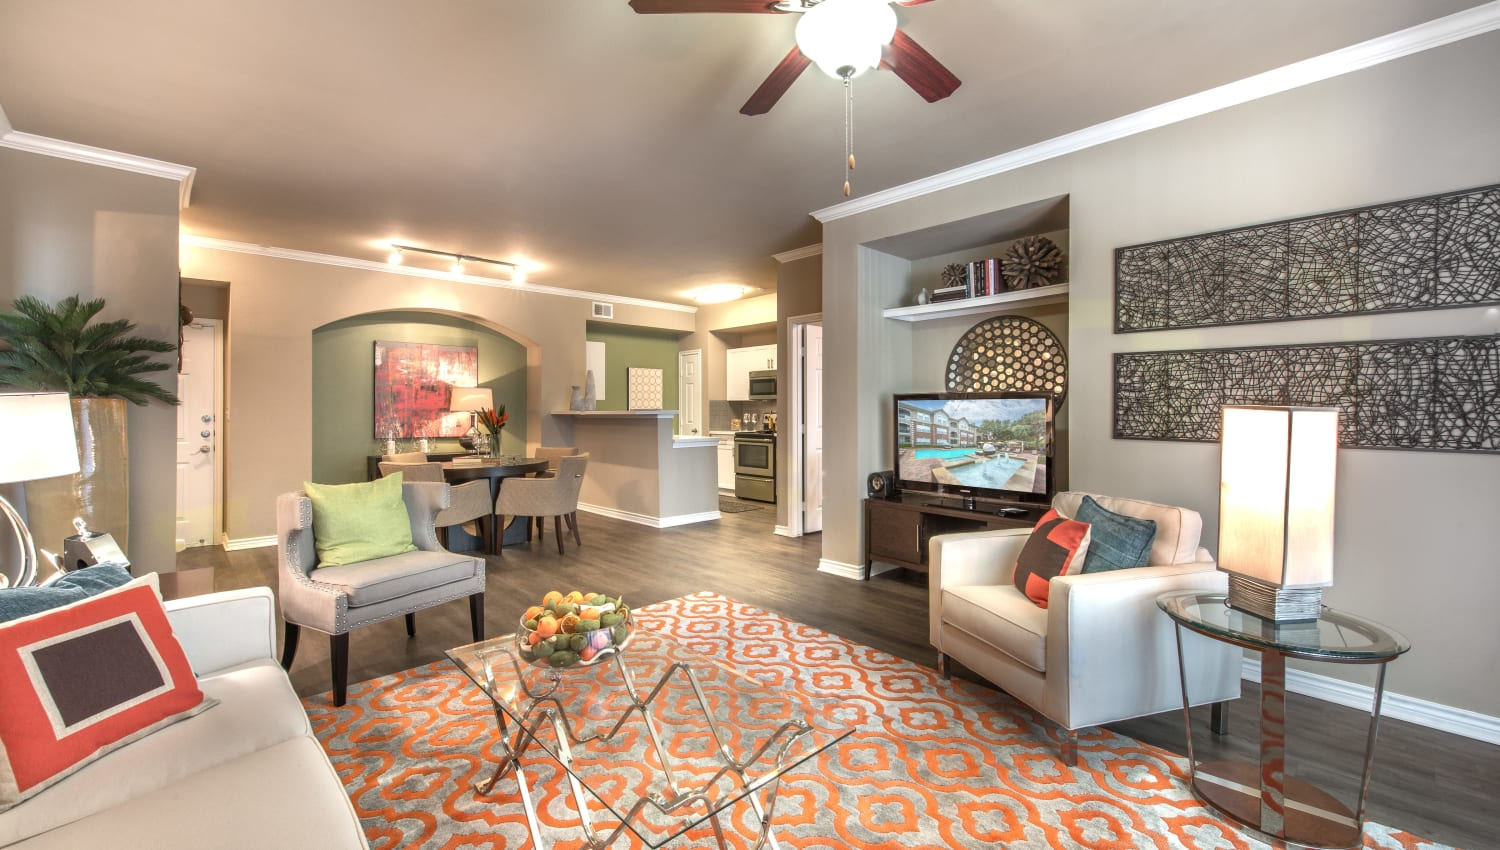 Spacious living room featuring area rugs and fine furnishings in an apartment at Olympus 7th Street Station in Fort Worth, Texas